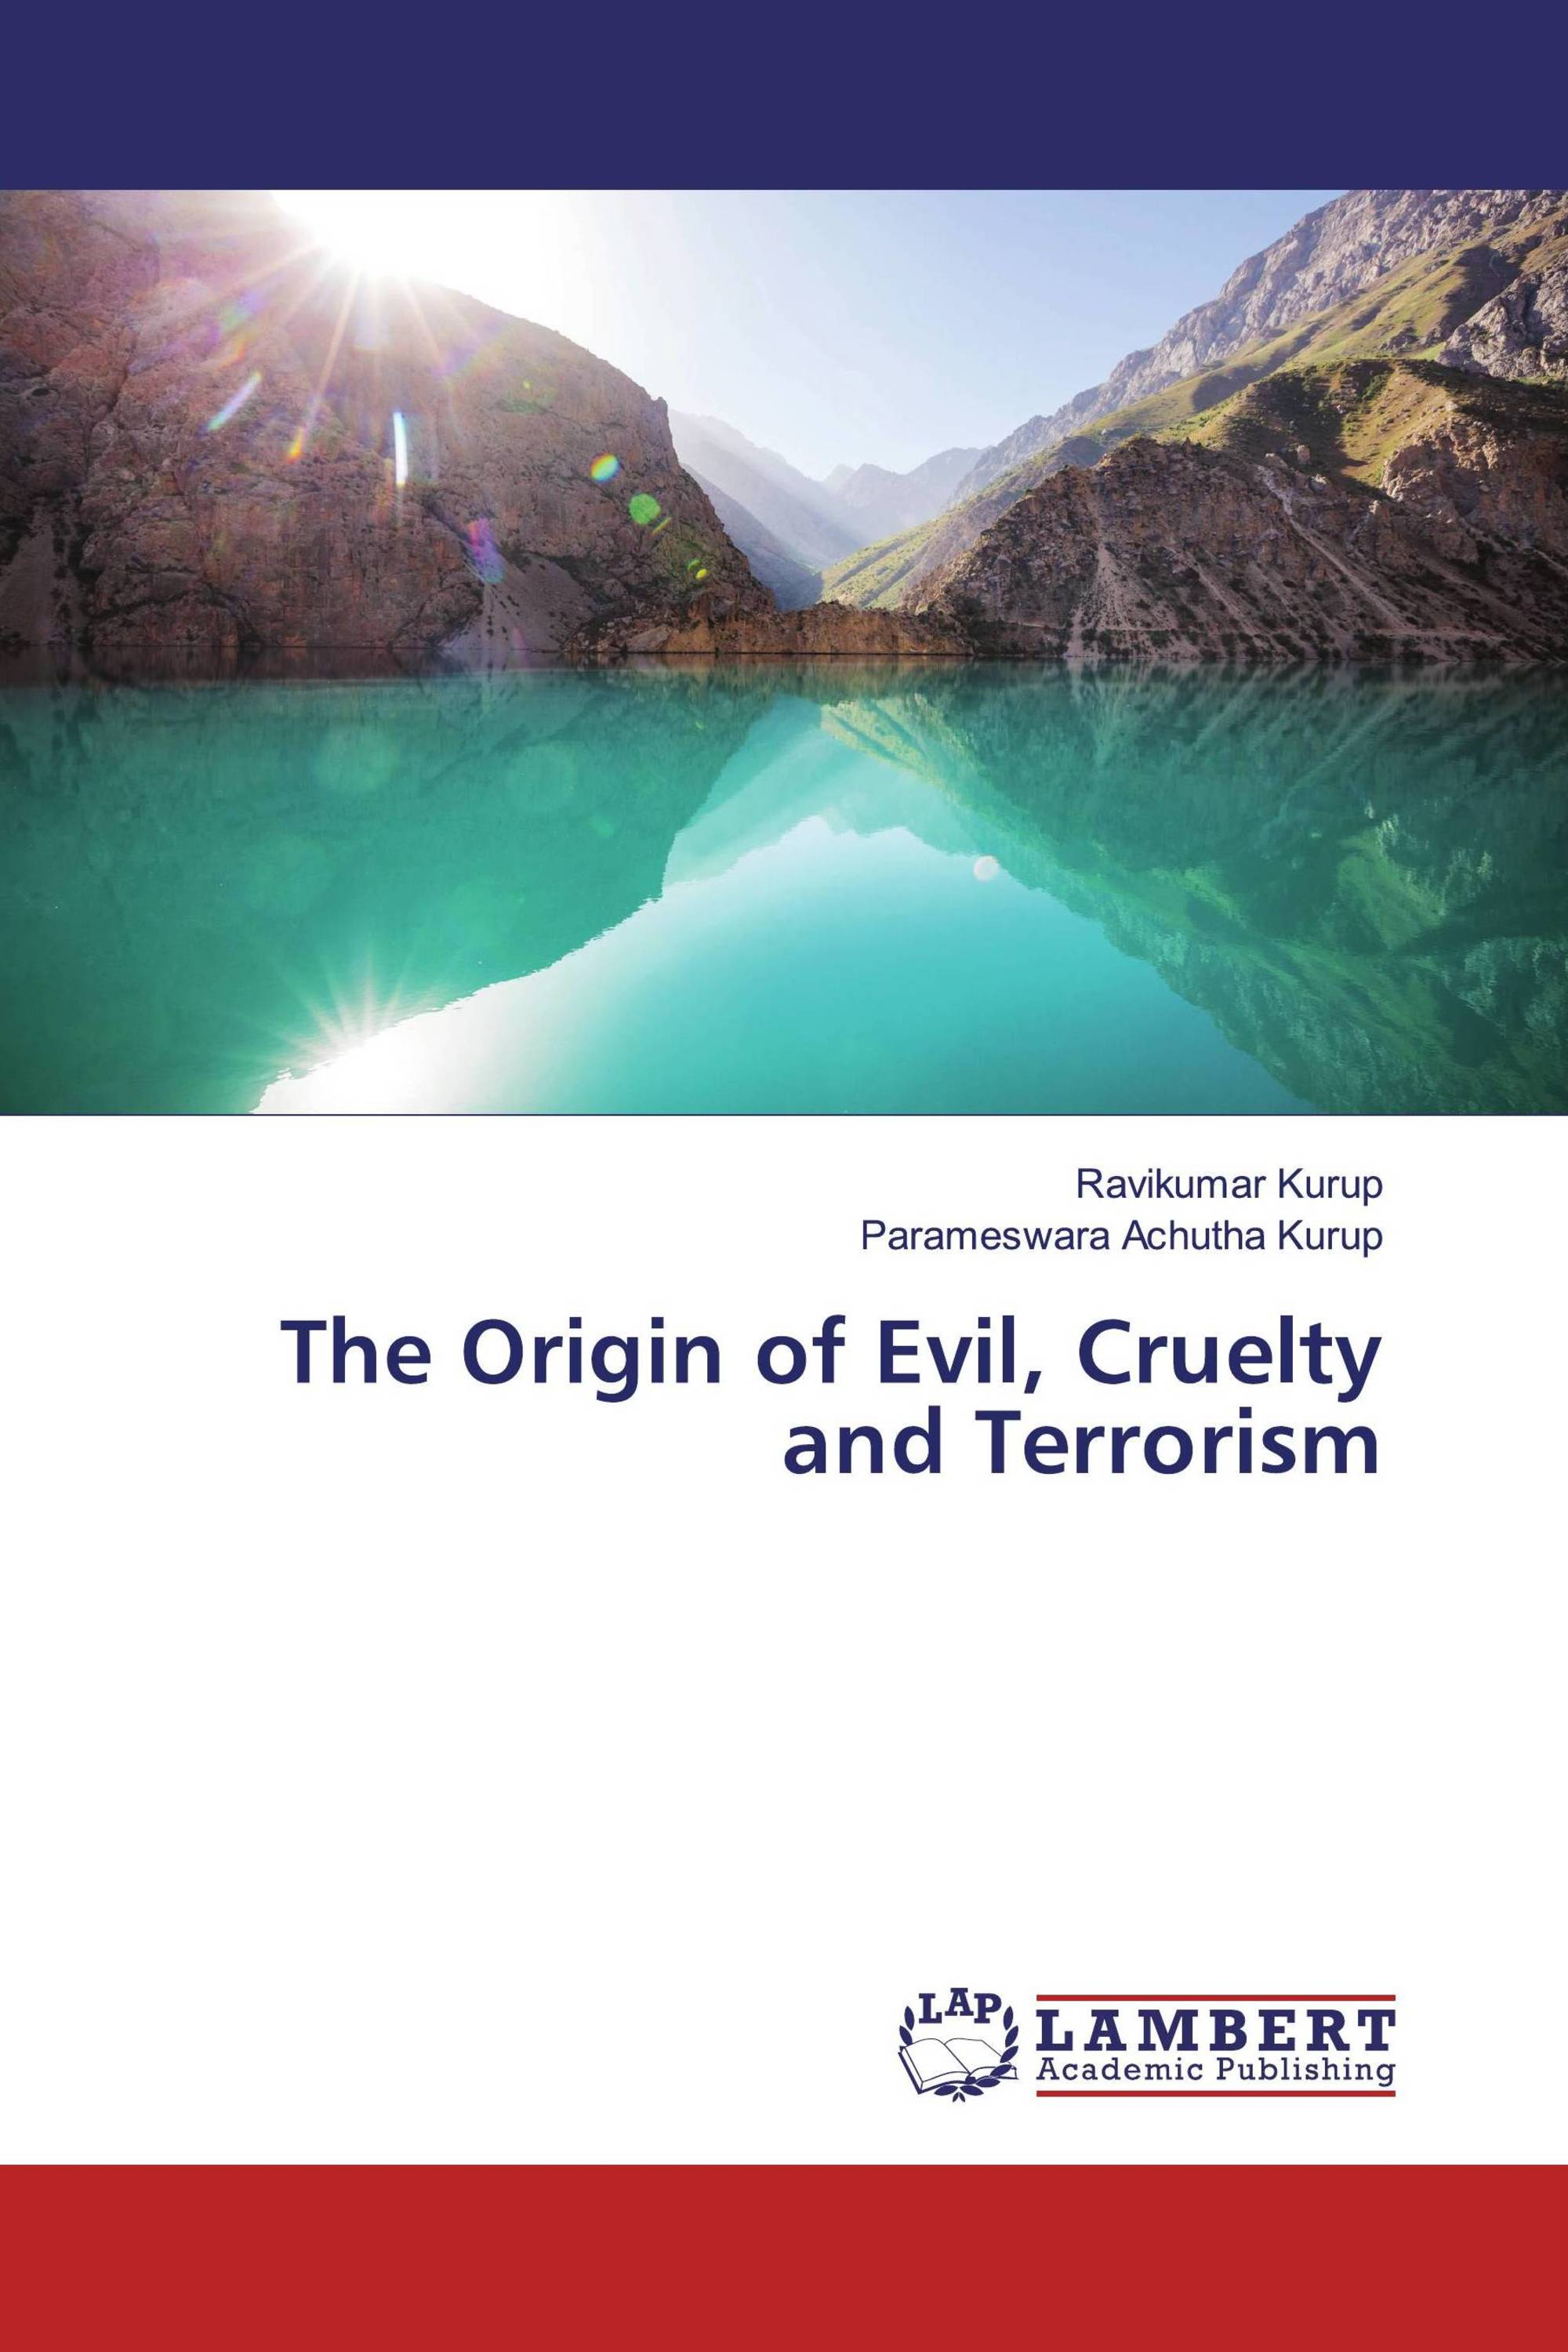 The Origin of Evil, Cruelty and Terrorism